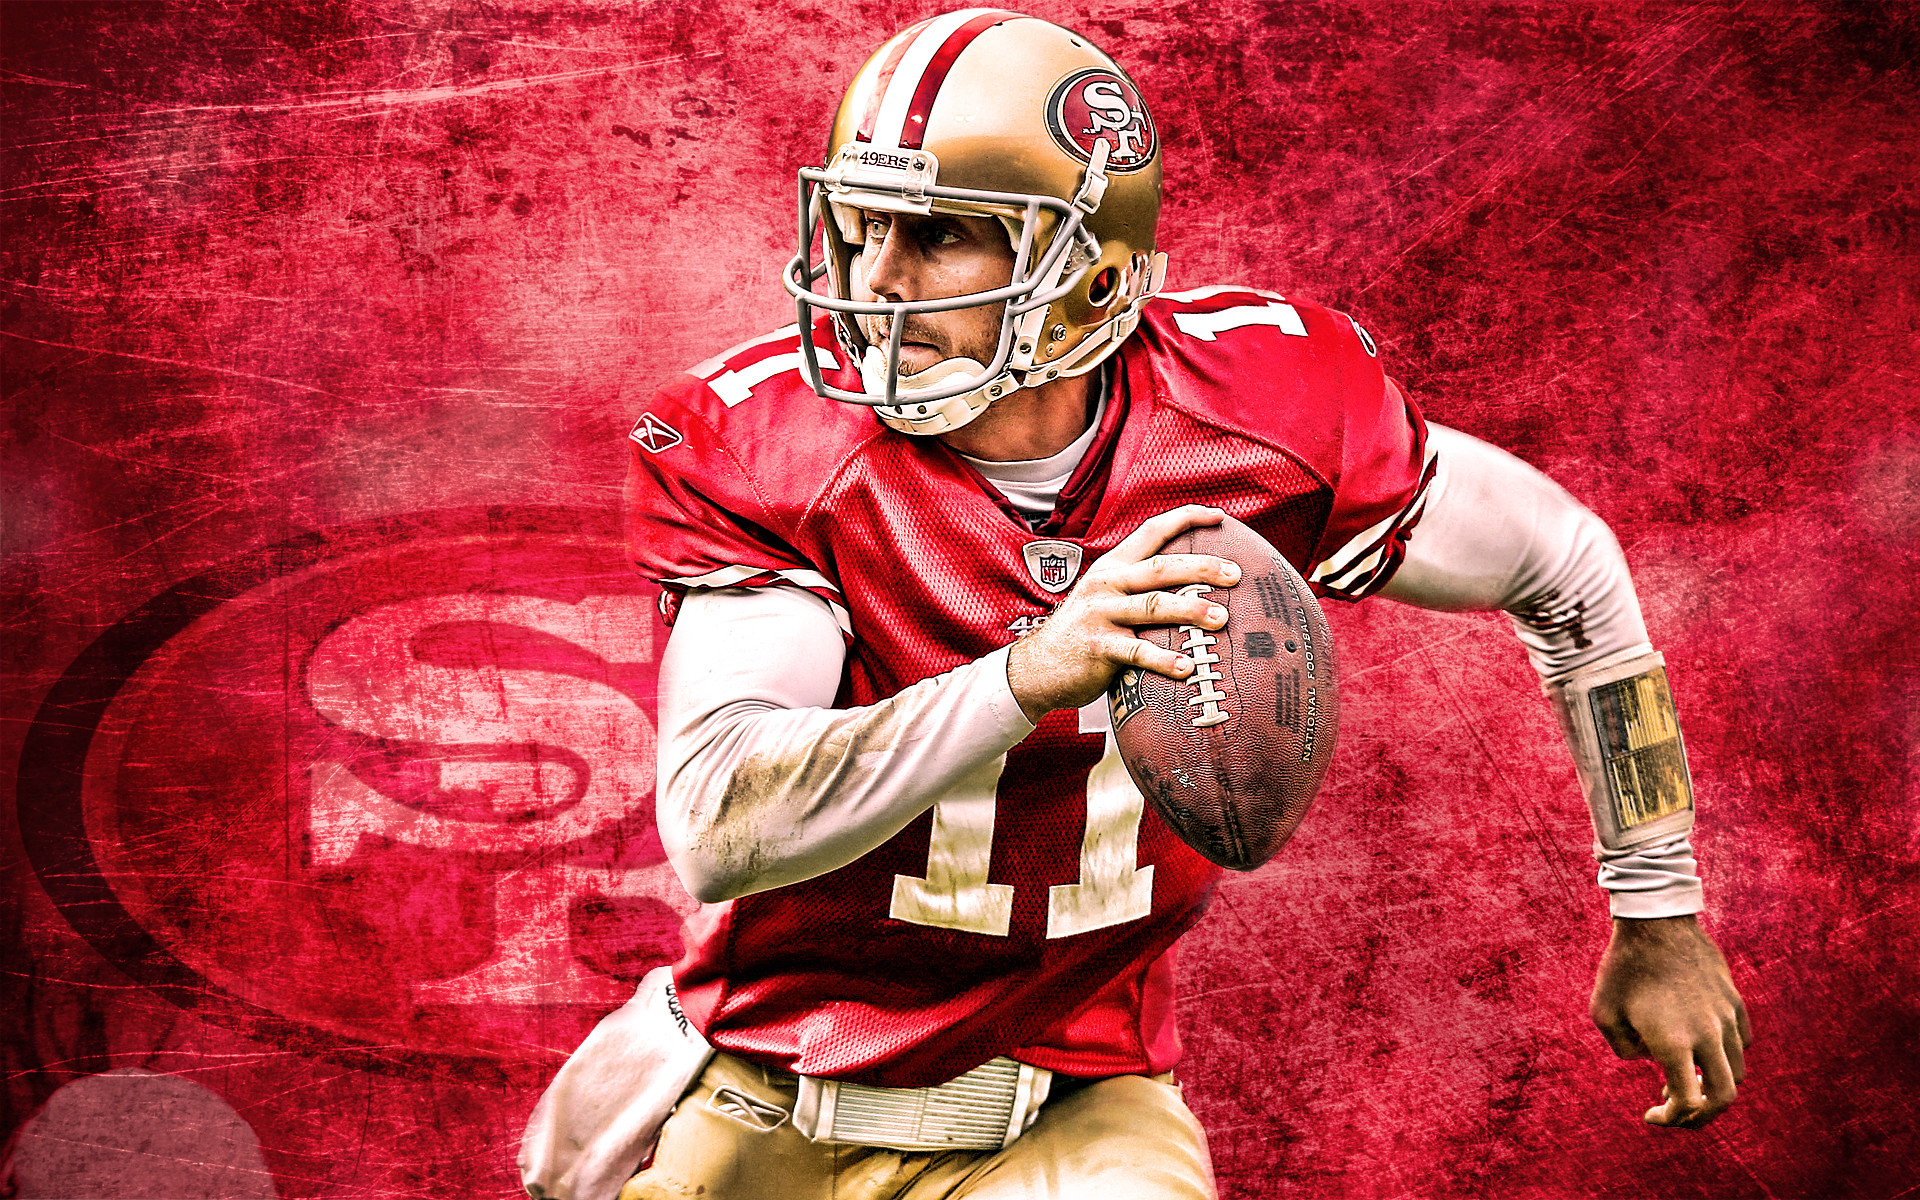 49er radio 49ers wallpapers 49ers images 49ers hd wallpapers 49ers .